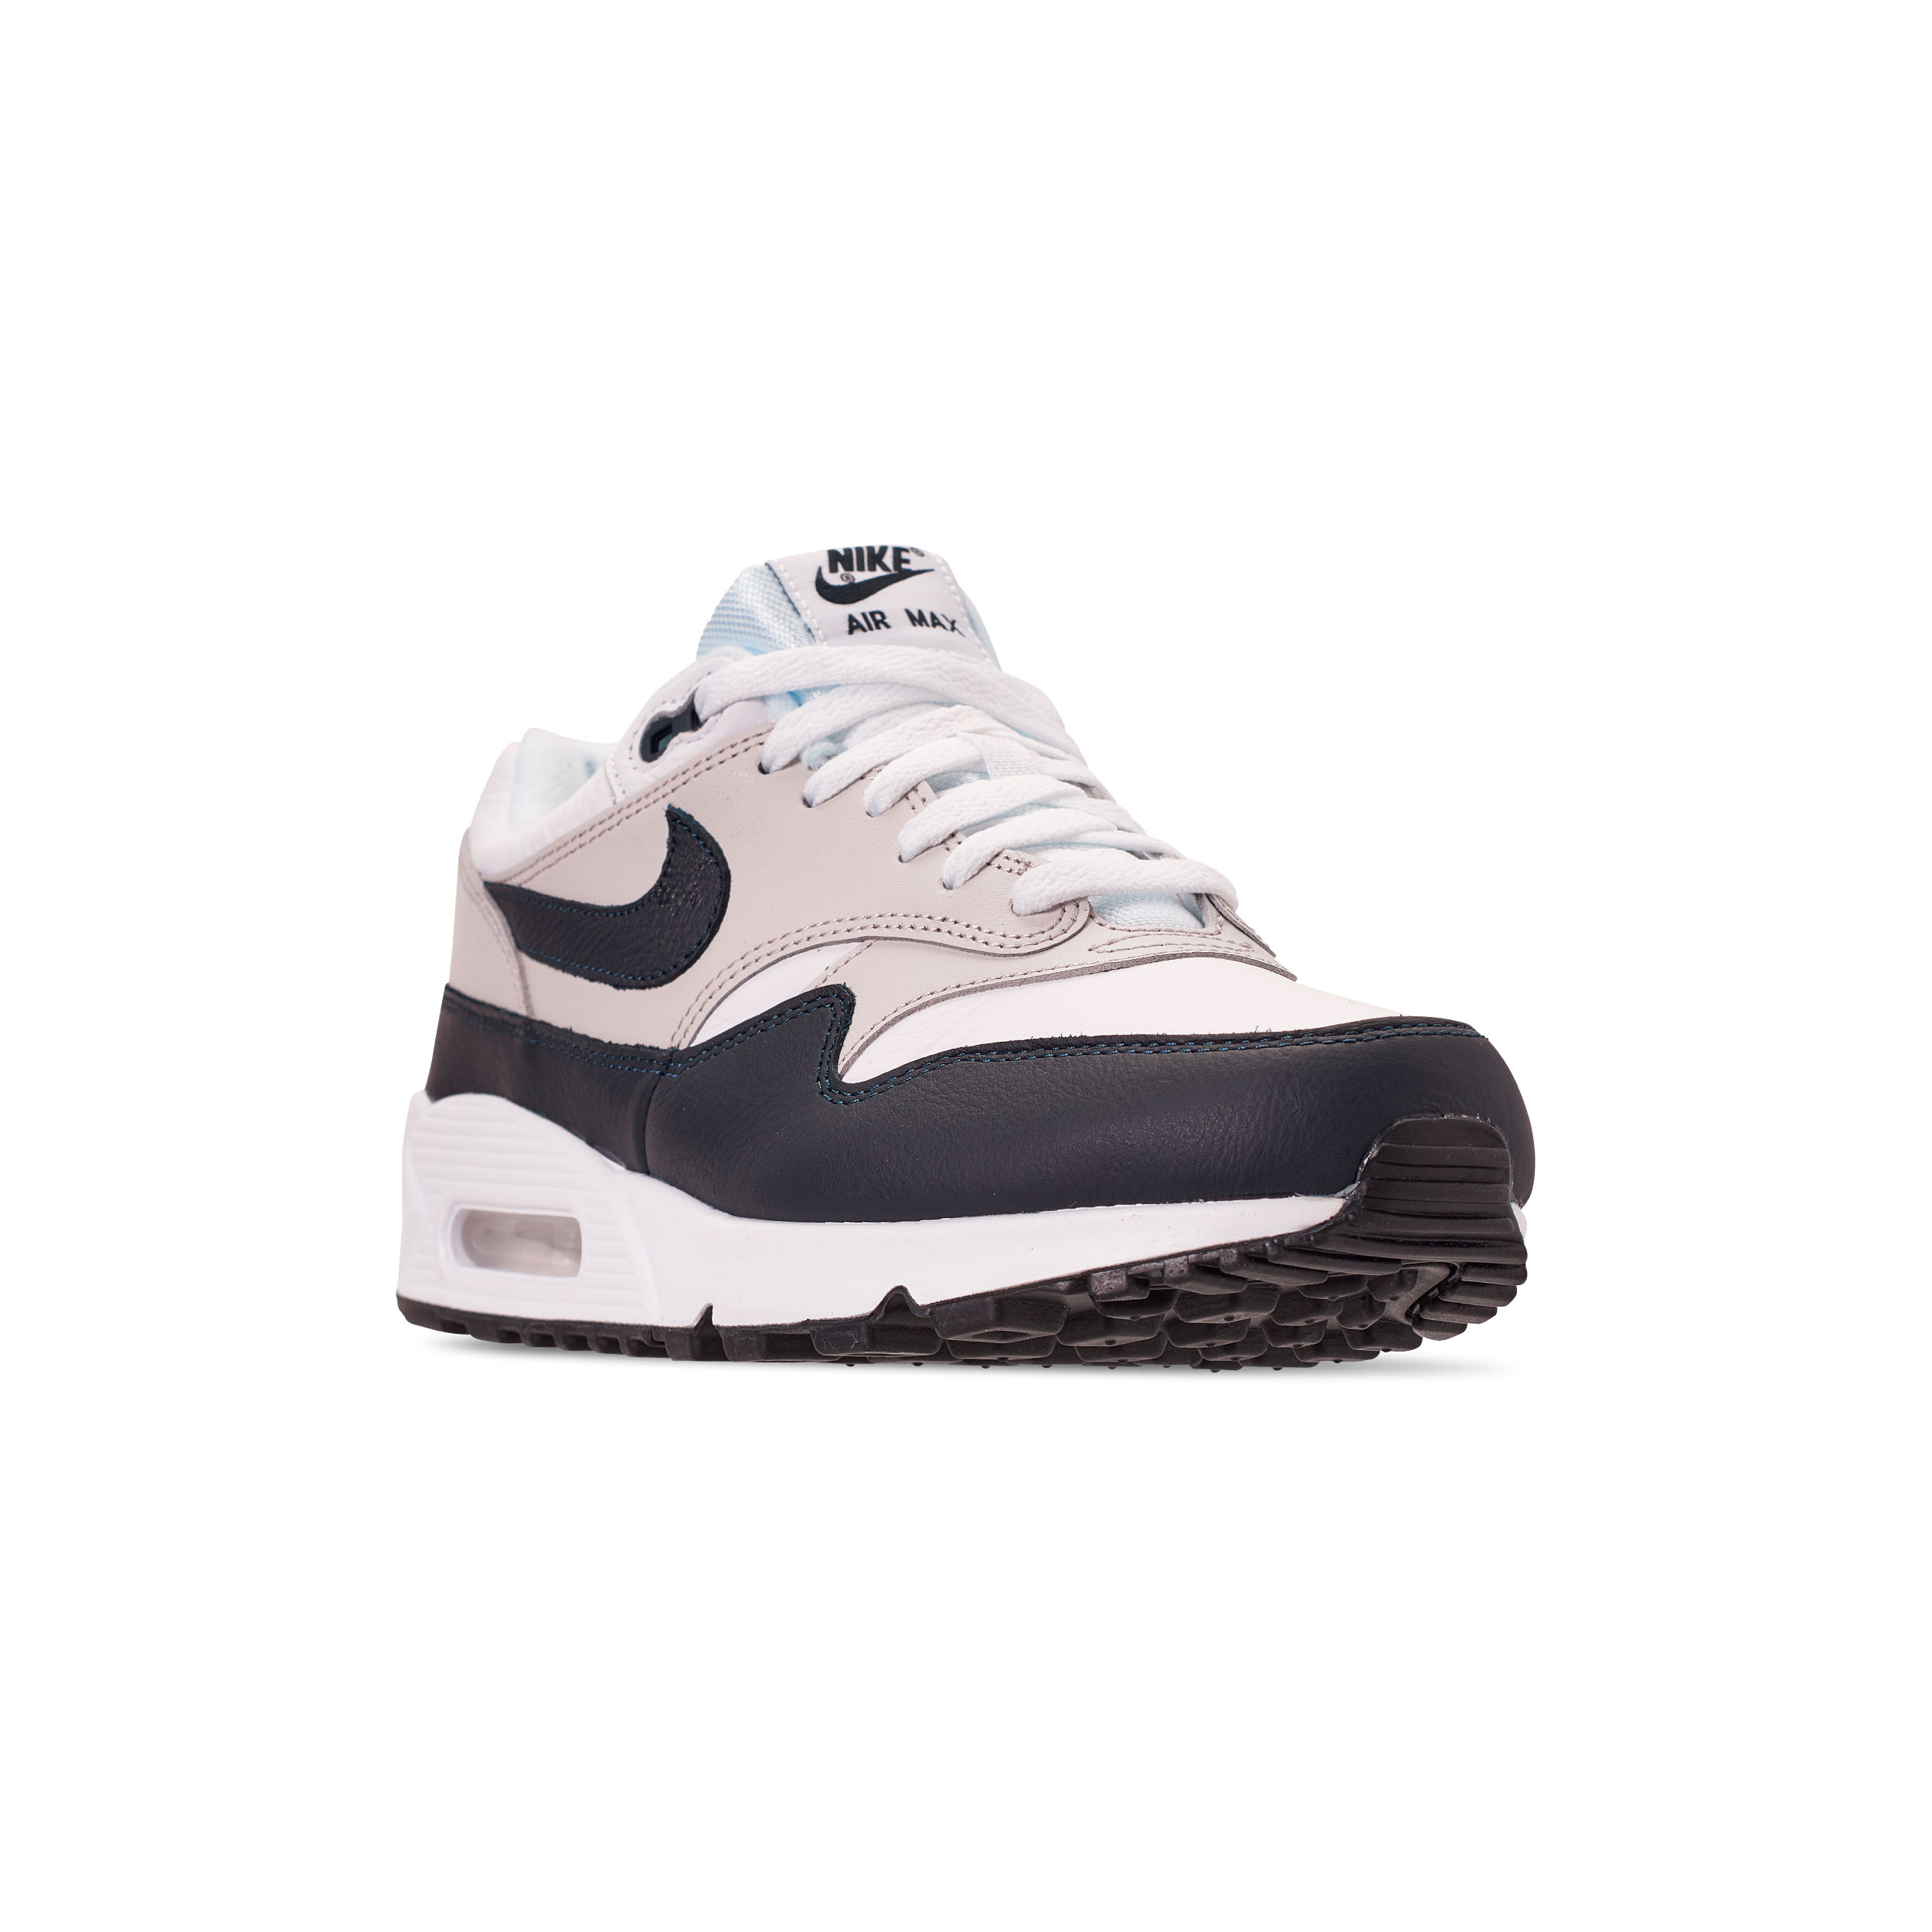 NIKE AIR MAX 90:1 WHITE:DARK OBSIDIAN NEUTRAL GREY BLACK 1